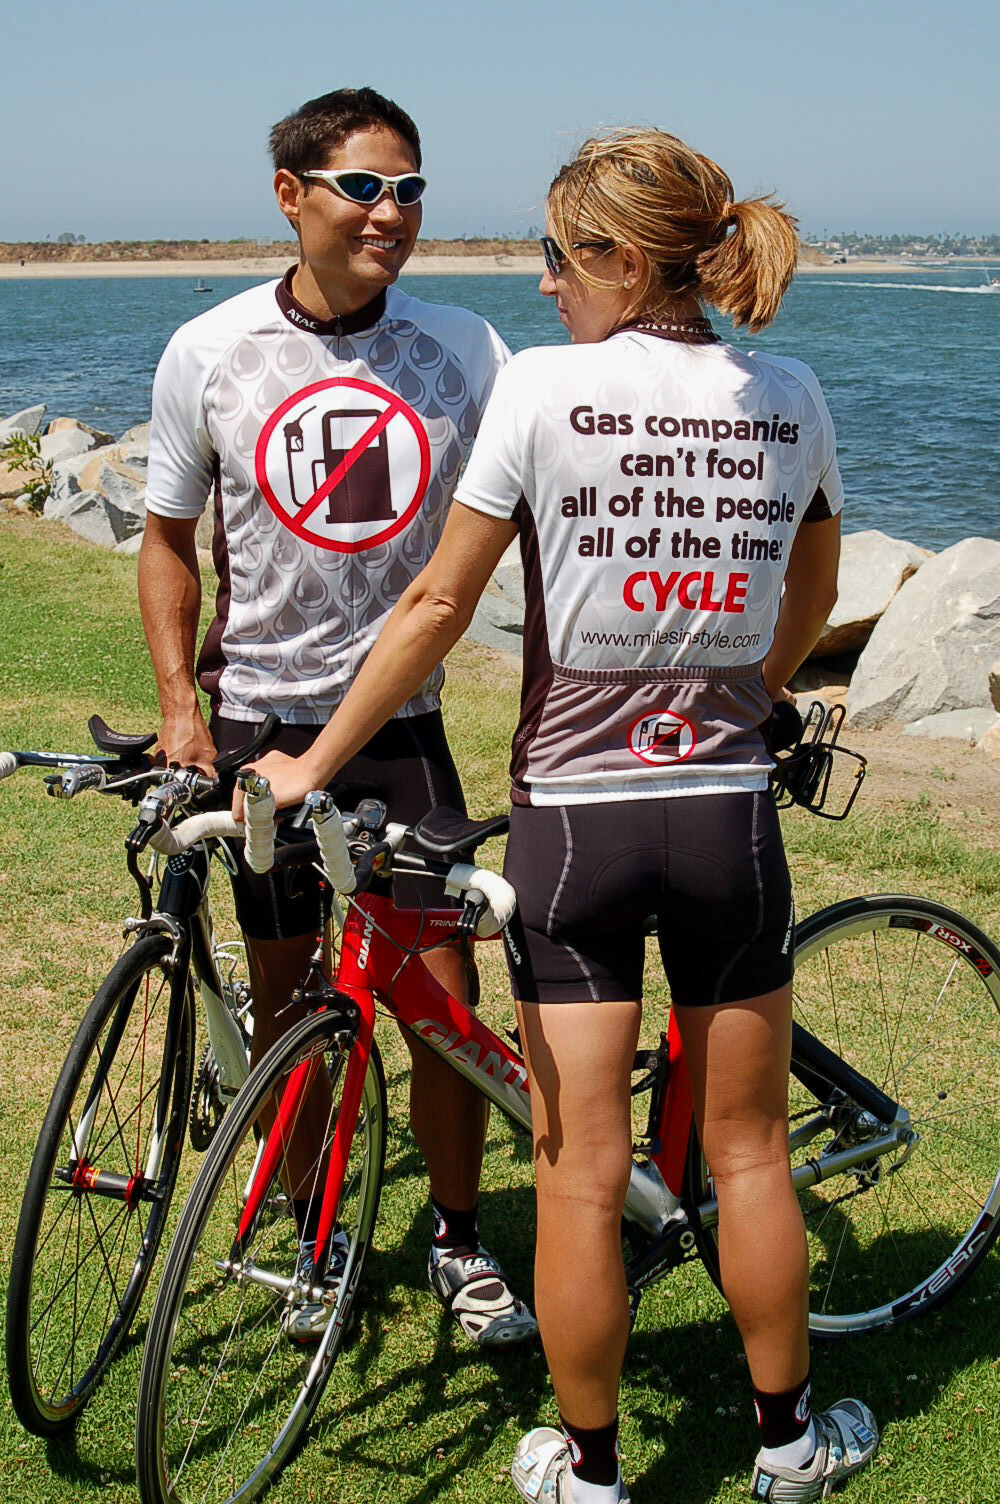 No Gas Pumps  Brand-New Funny Men's Bicycle Jersey